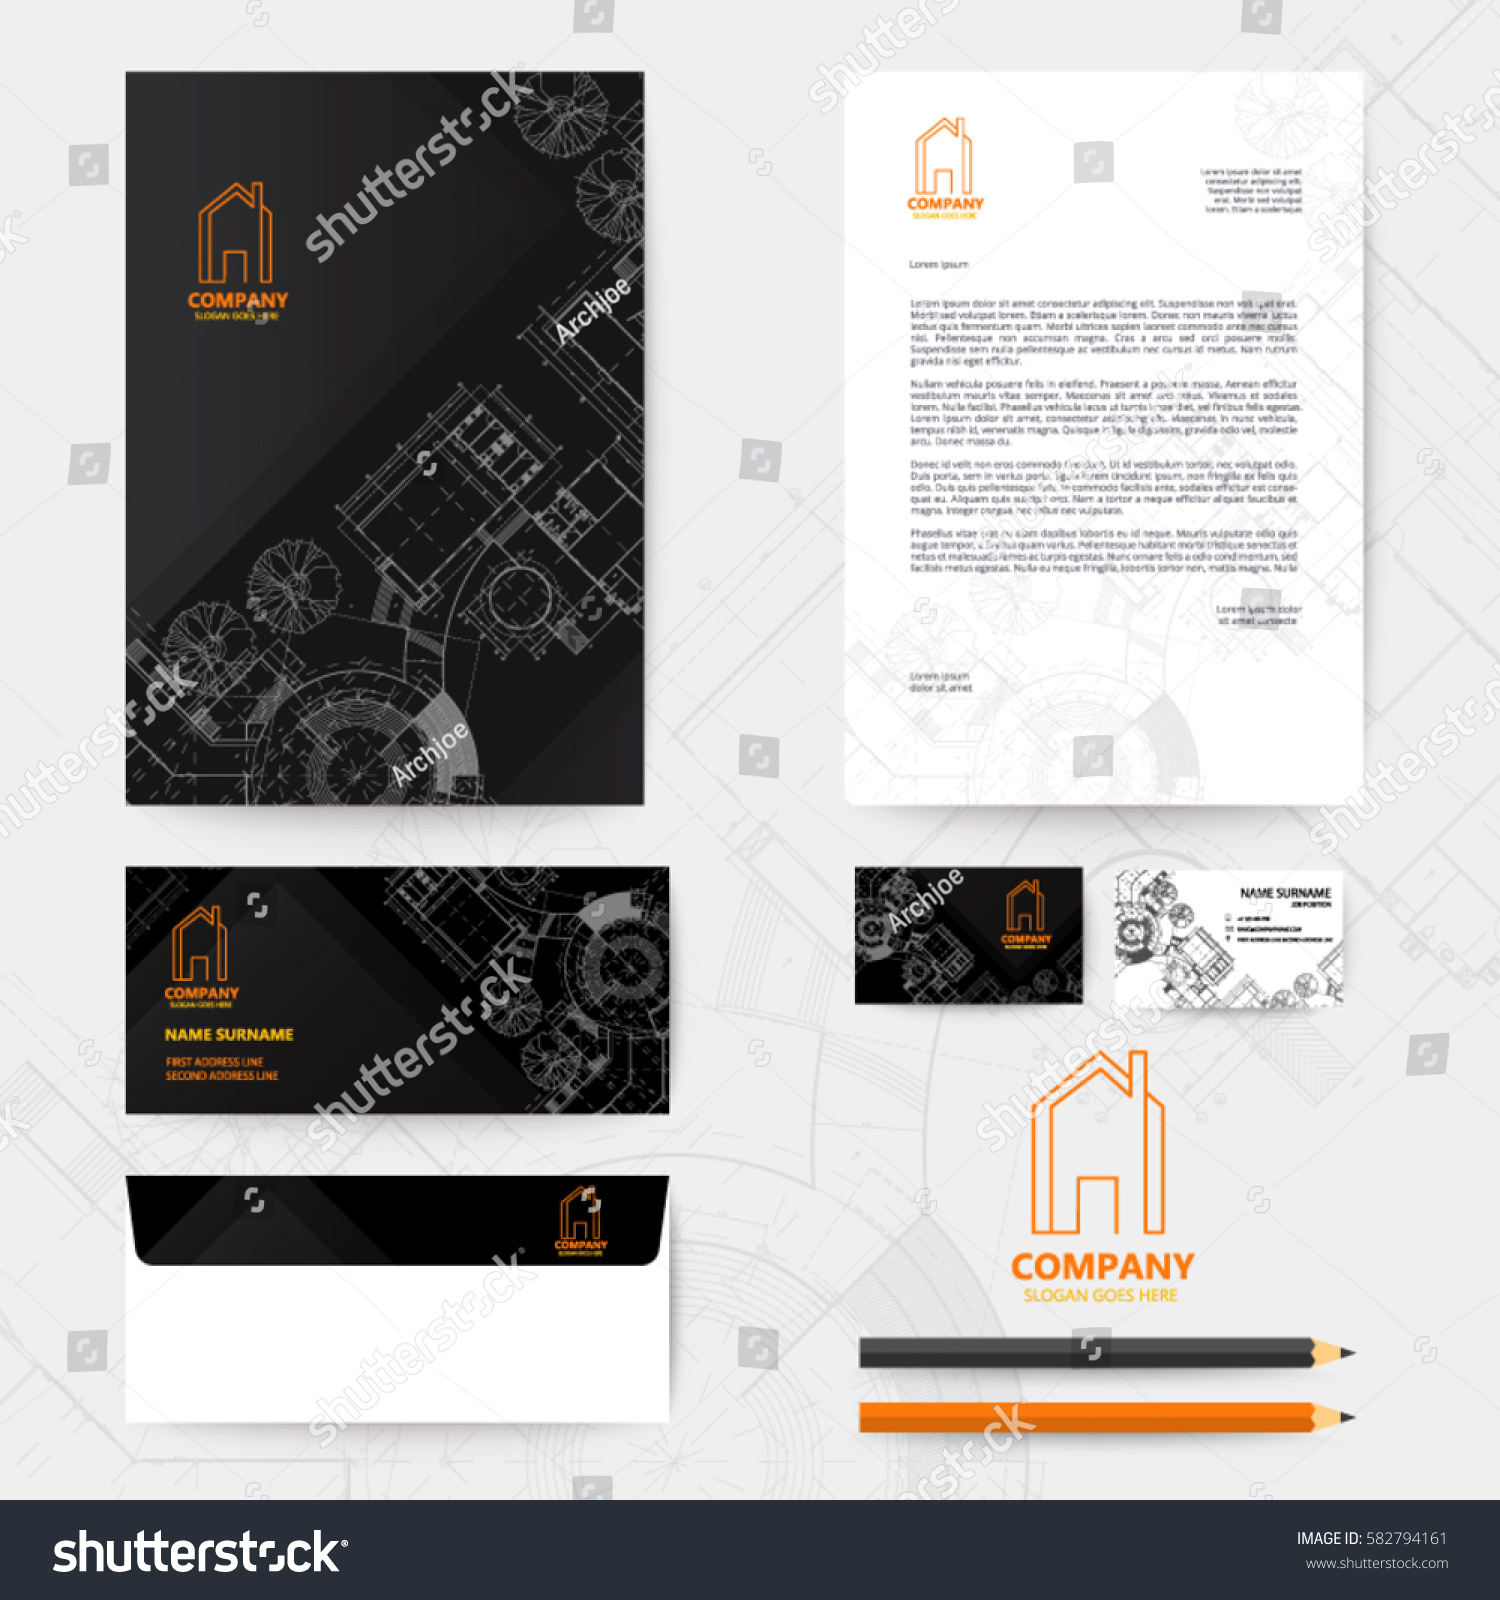 Corporate identity template design blueprint background stock corporate identity template design with blueprint background business realestate malvernweather Image collections